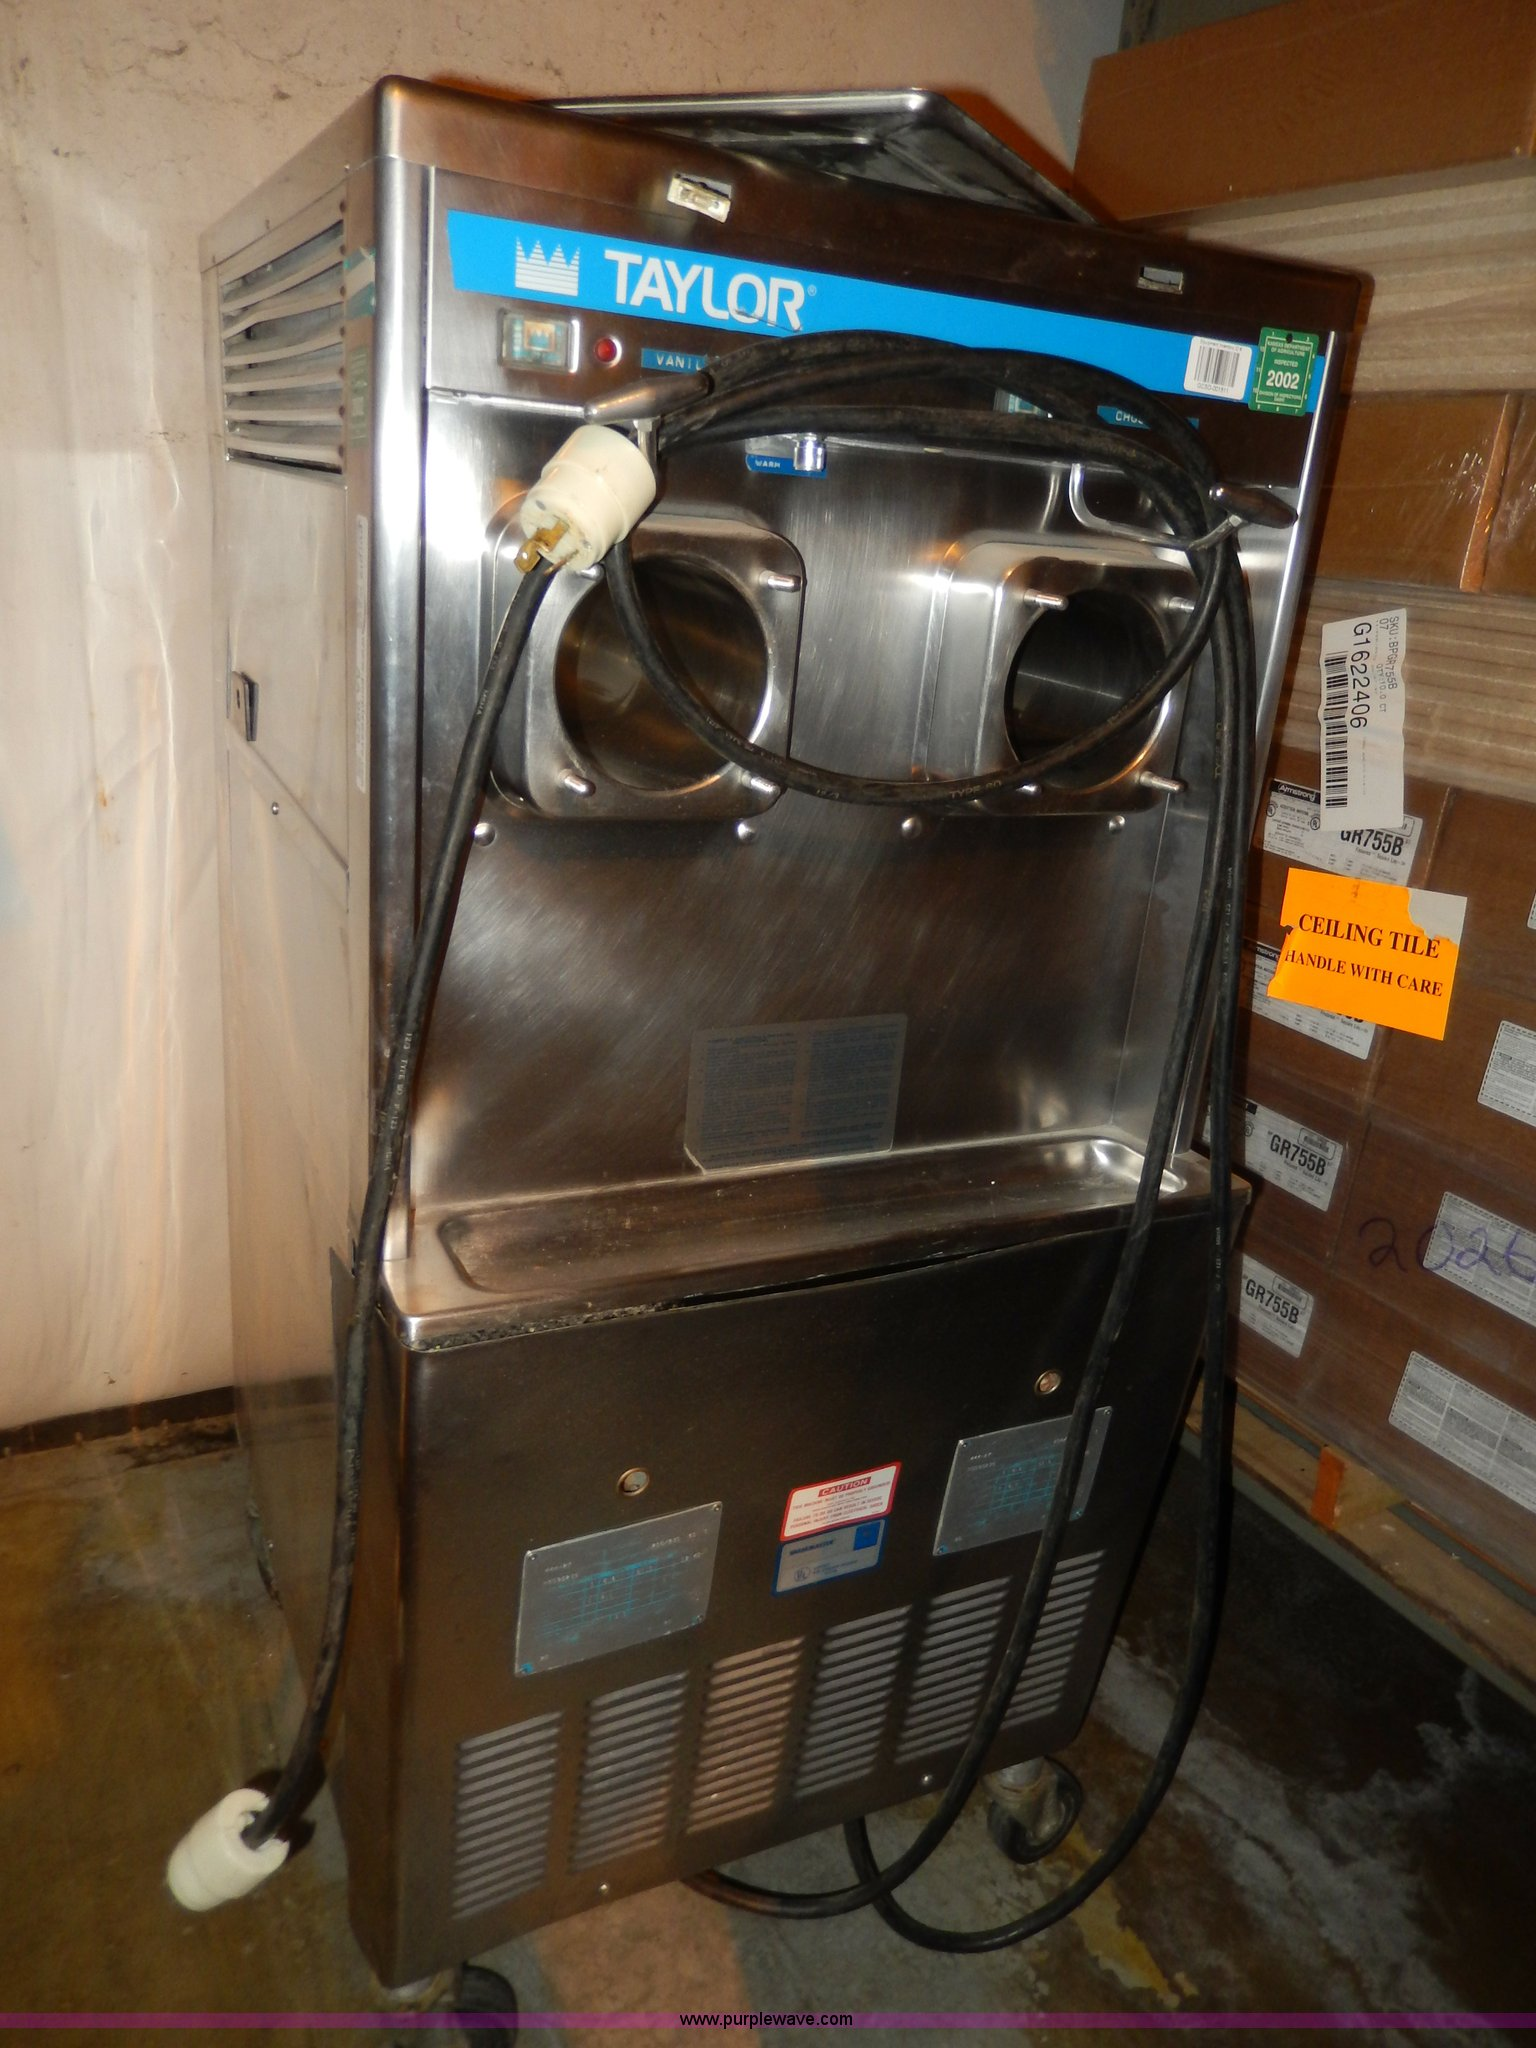 AA9979 Image For Item Taylor Dual Ice Cream Machine